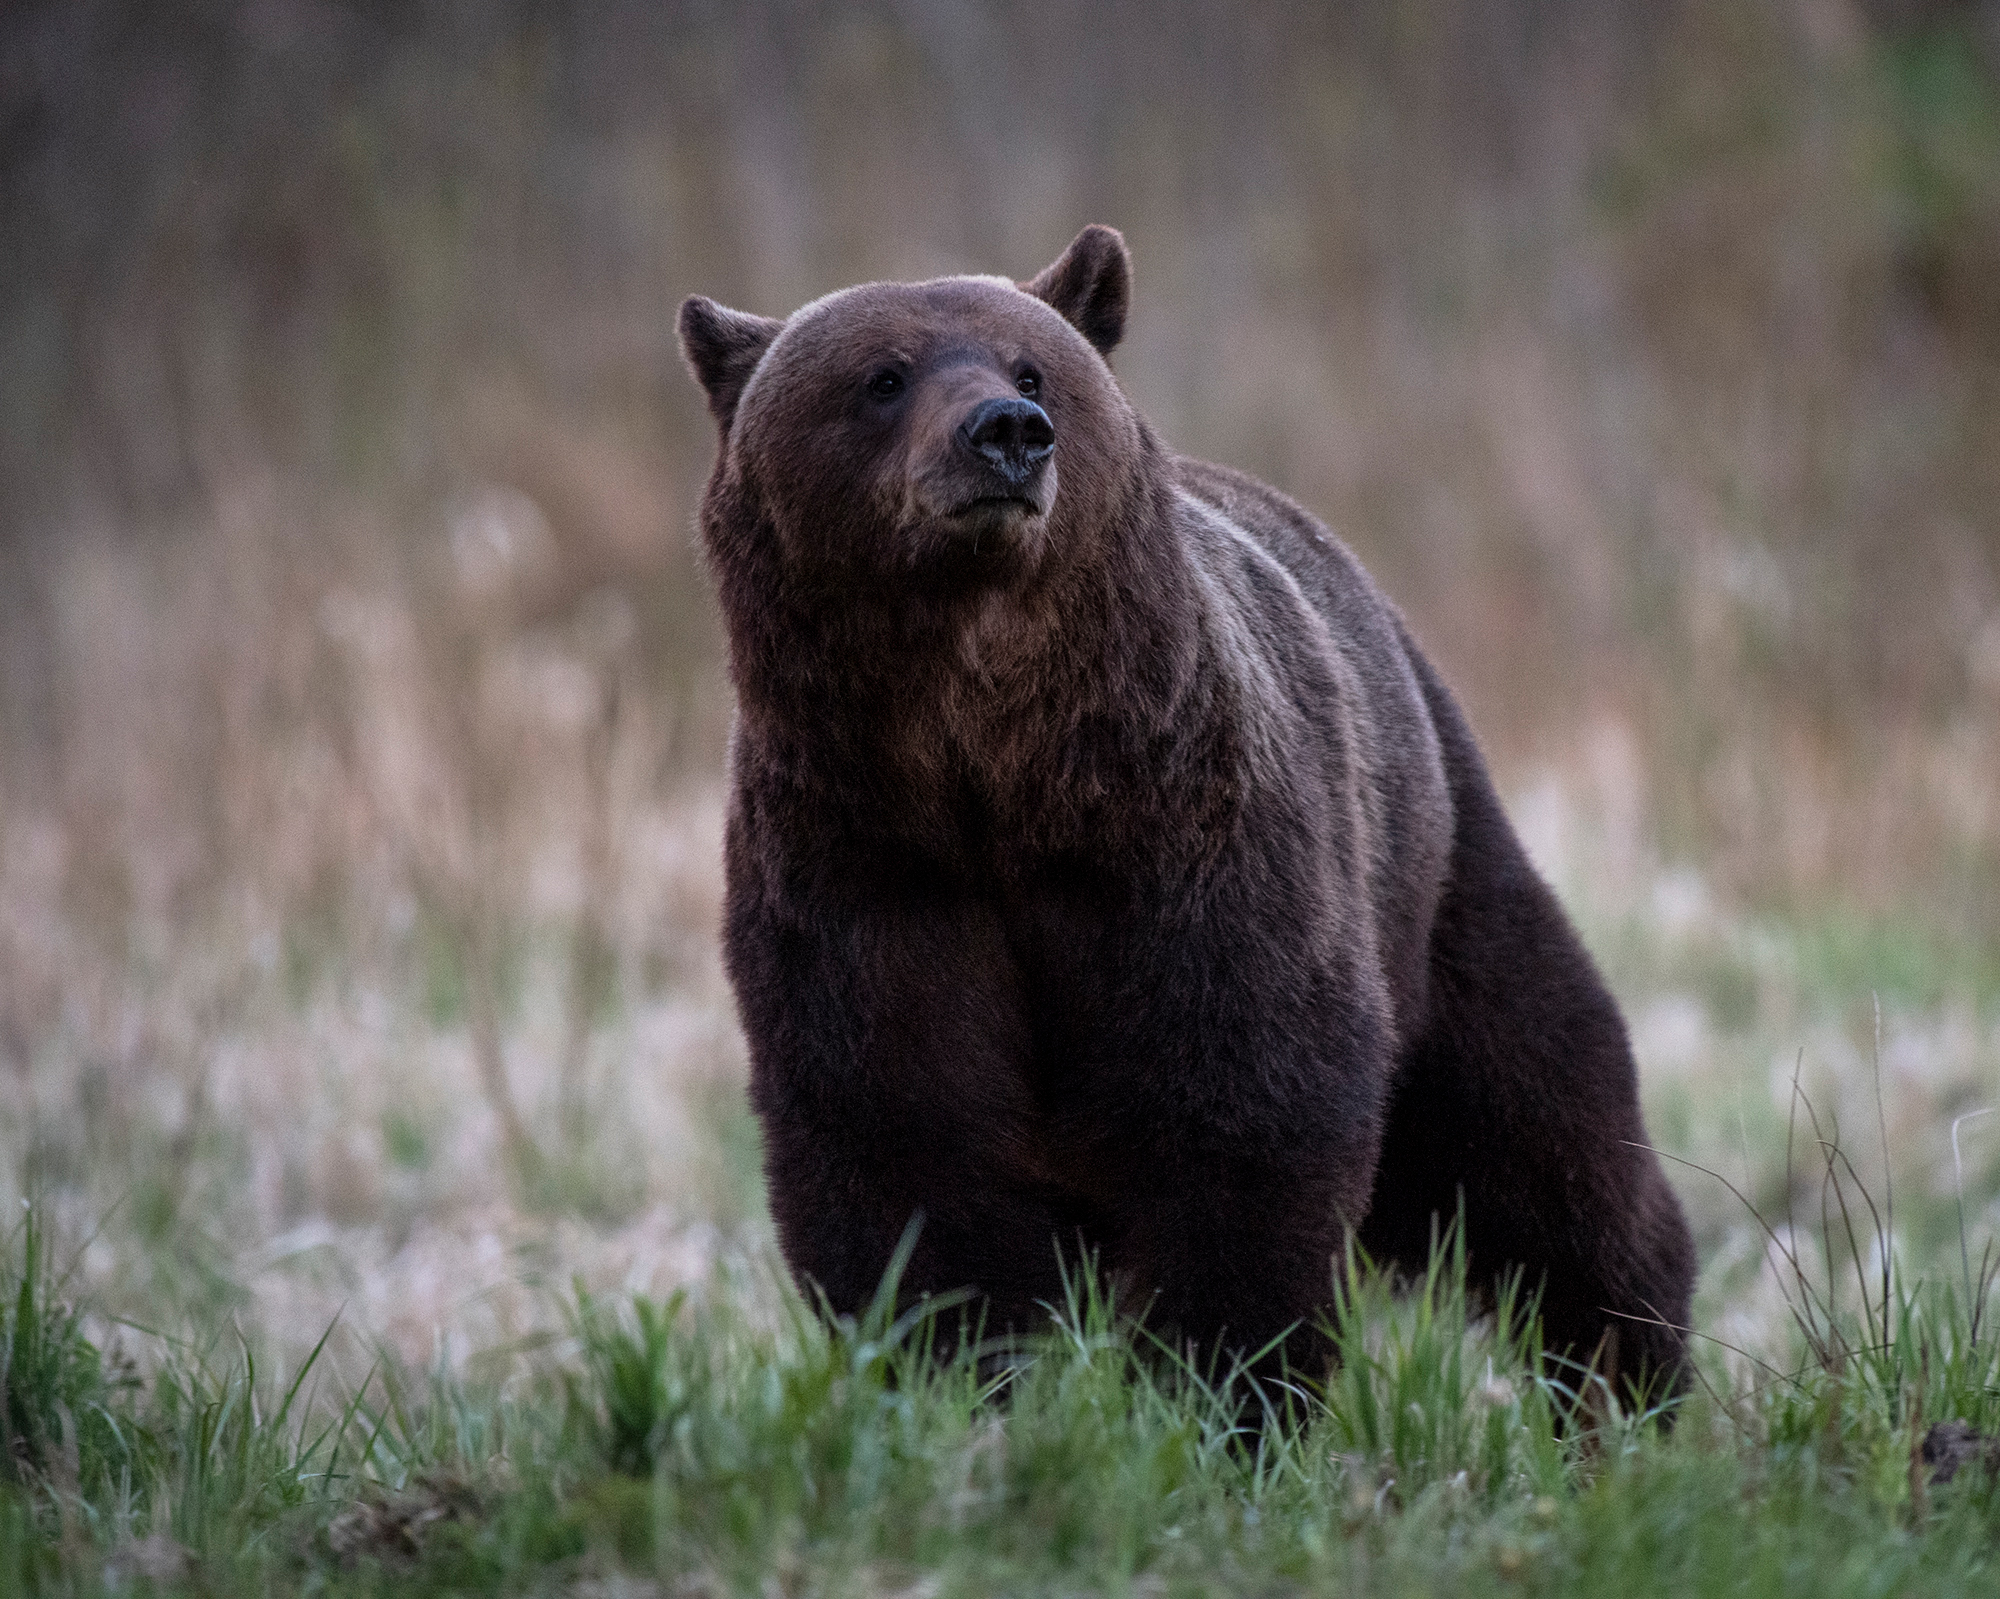 Pruunkaru, Ursus arctos, Brown Bear